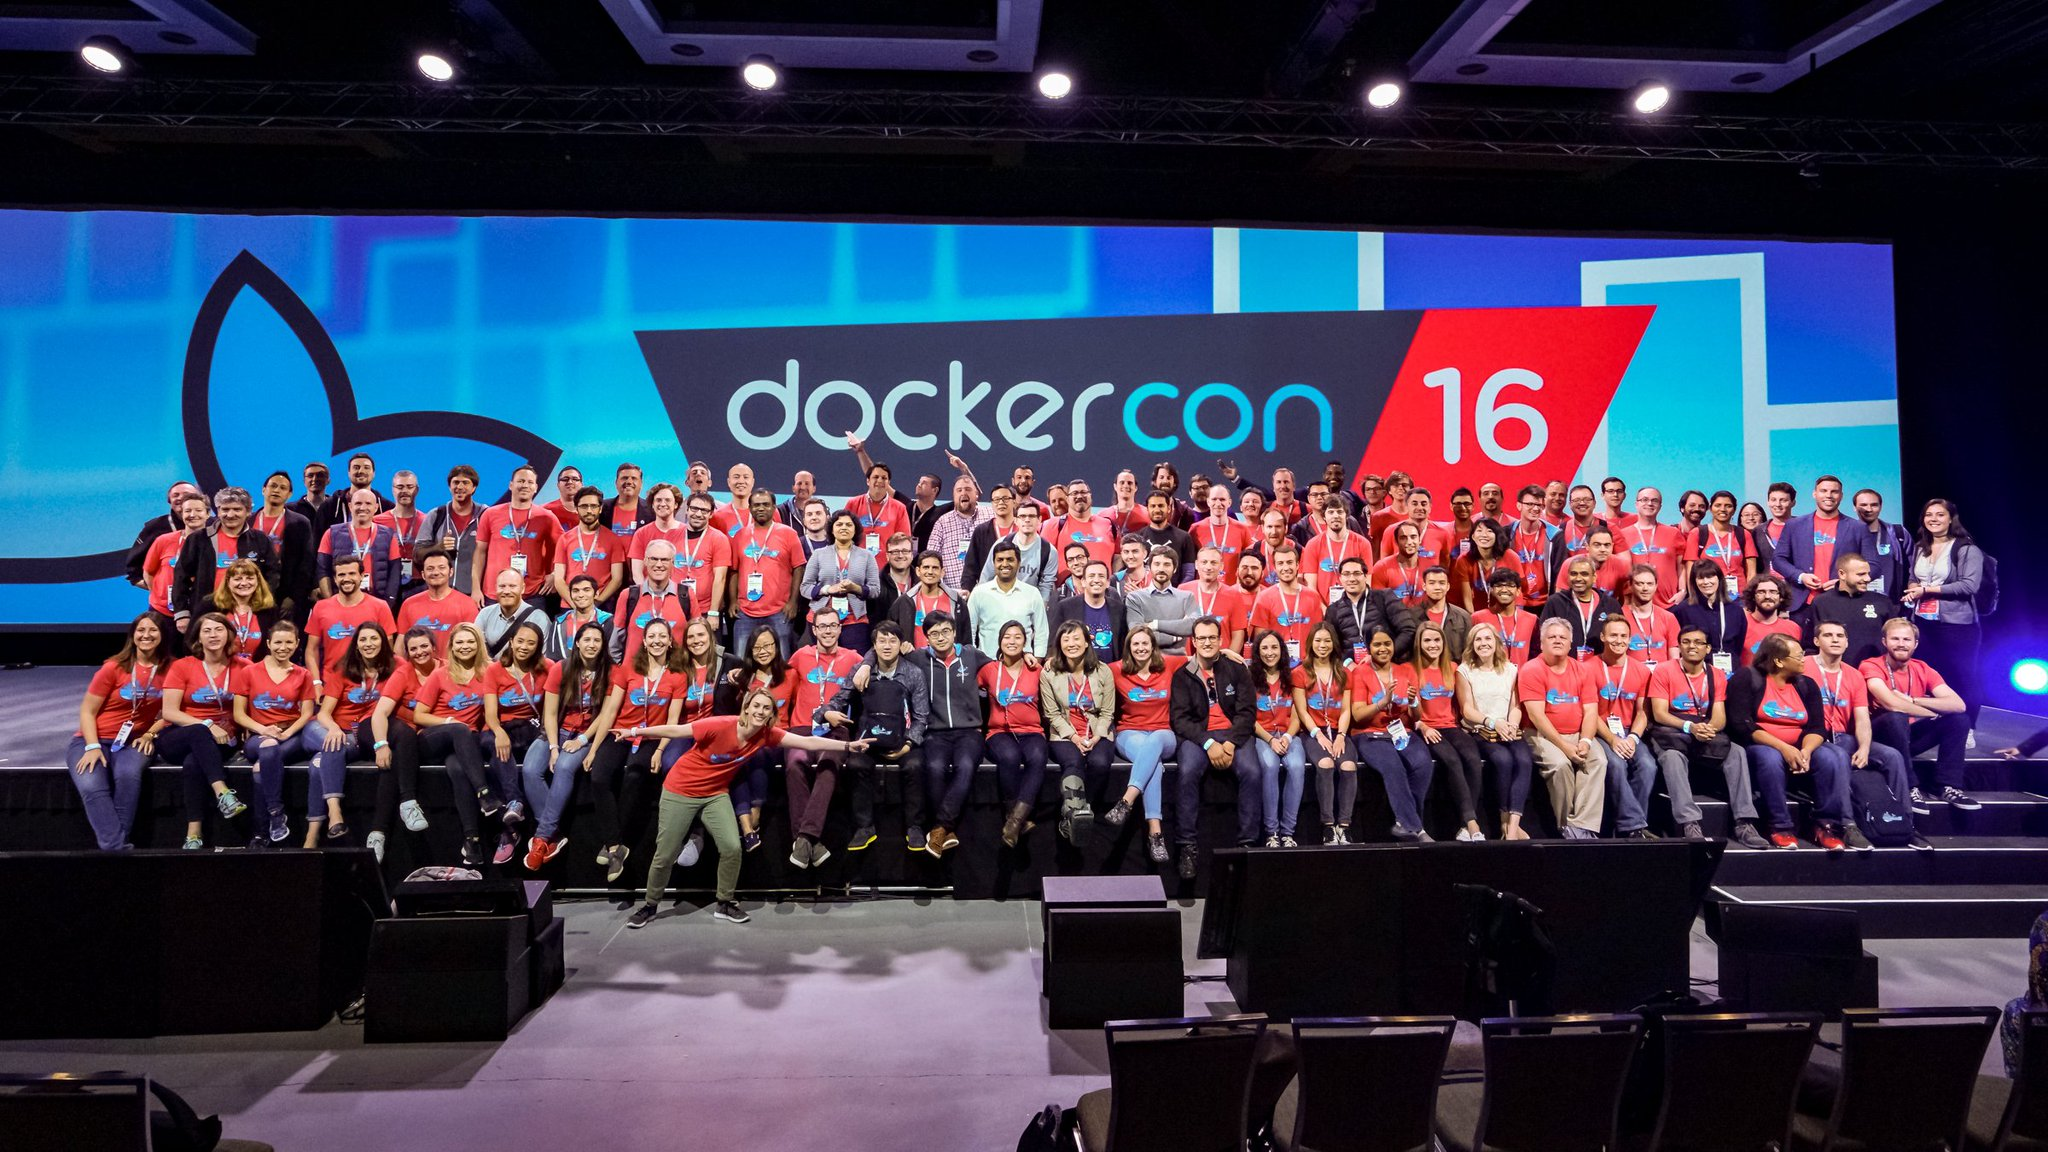 dockercon-16-seattle-group-photo